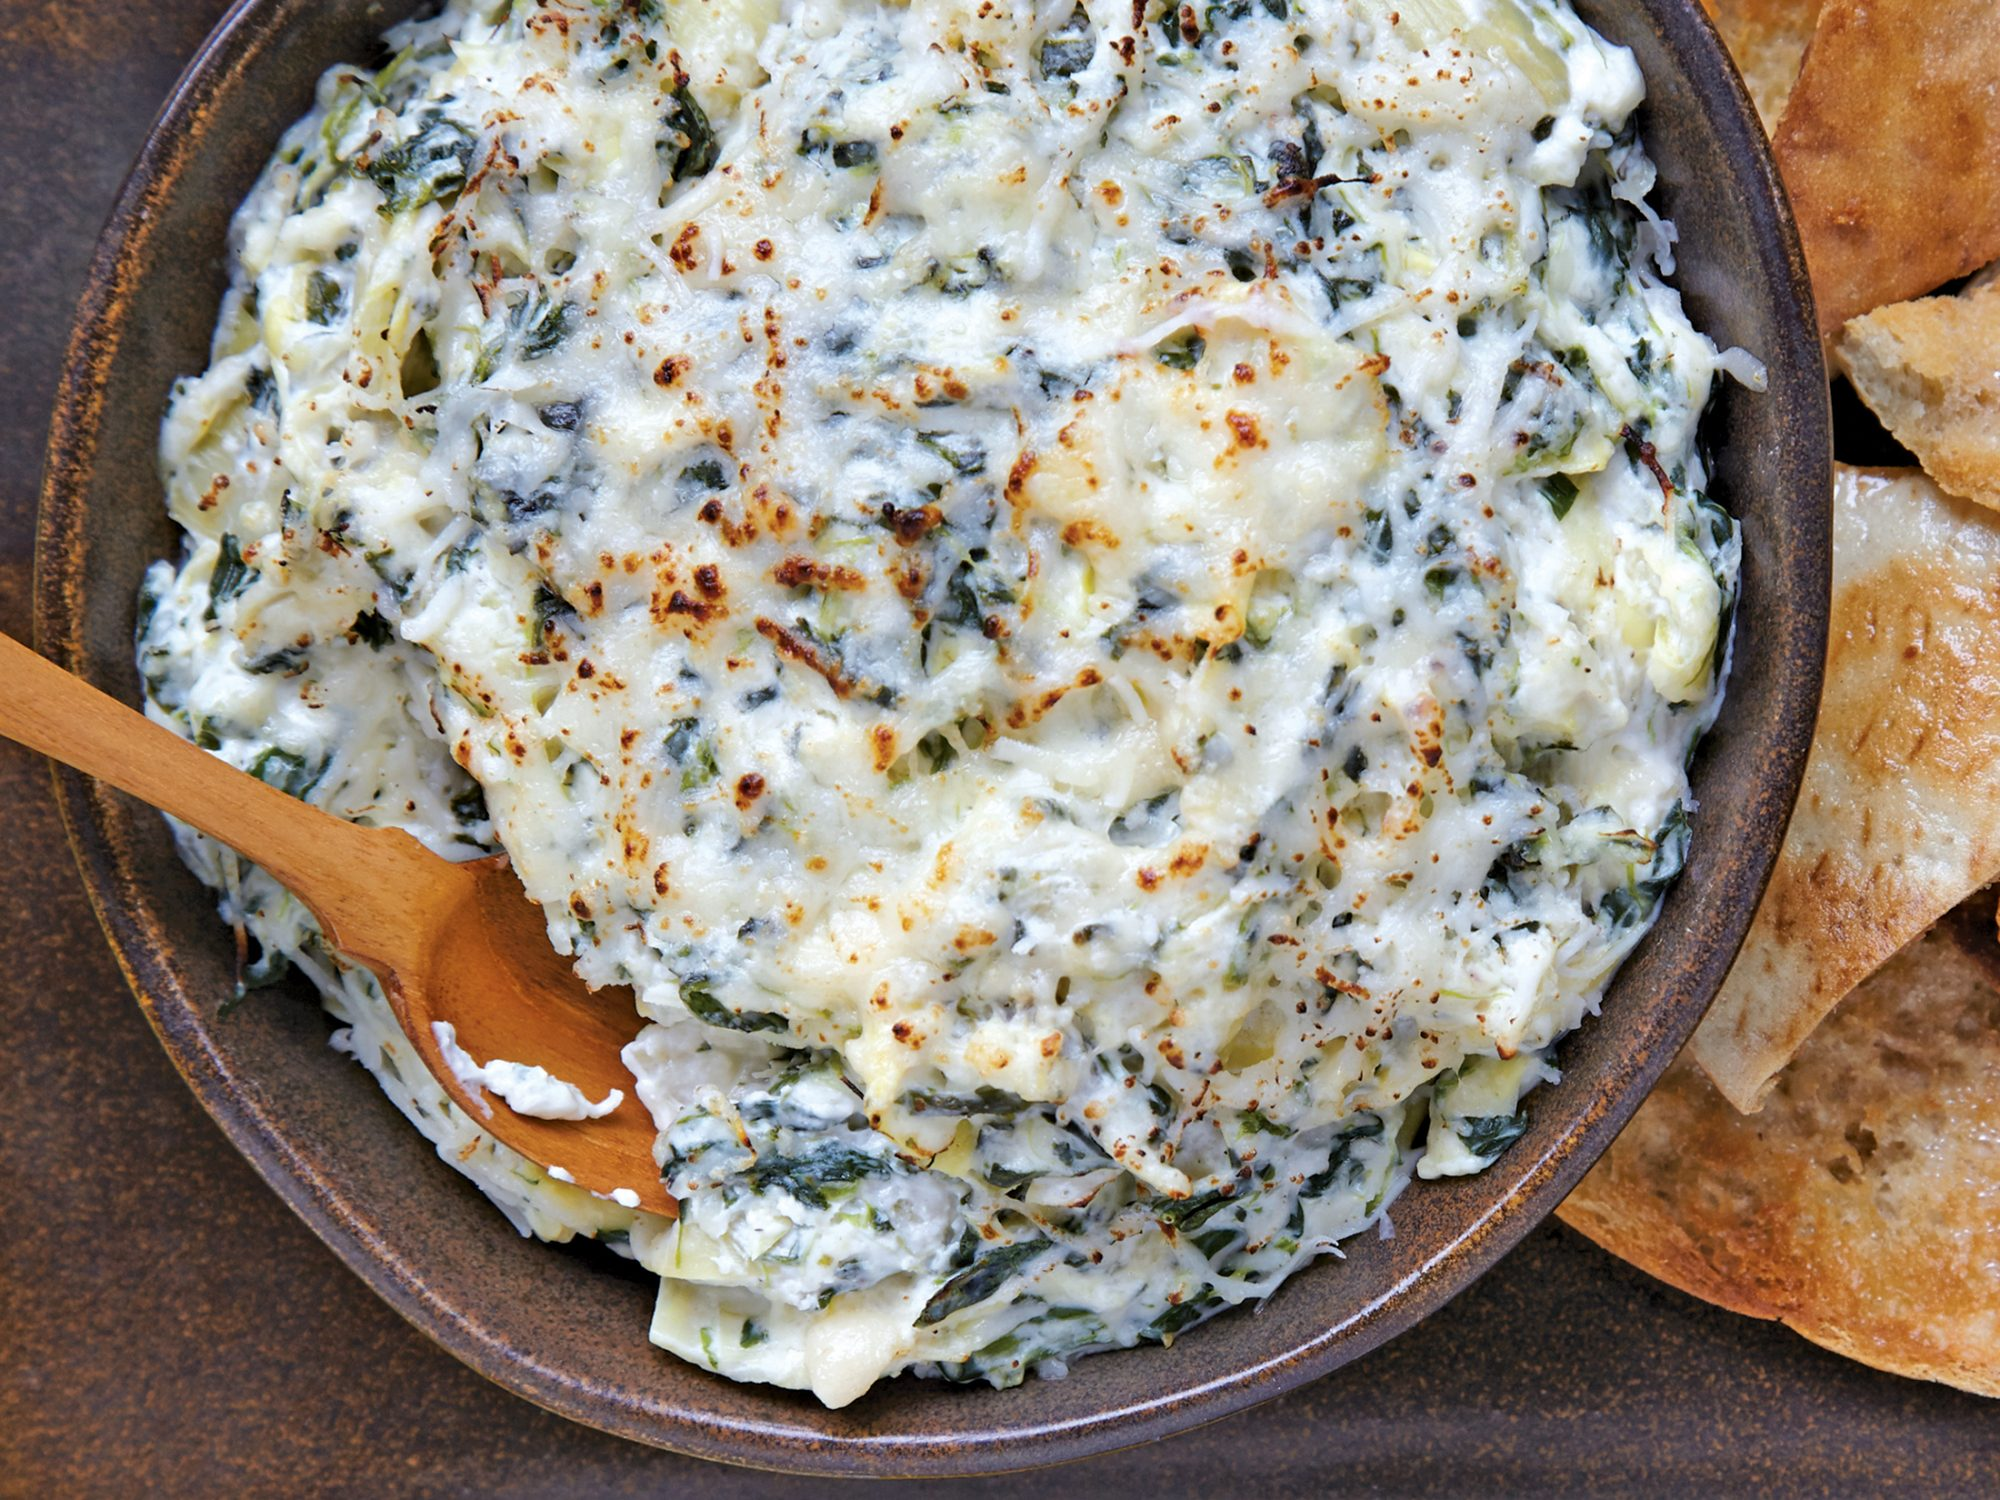 Our Best Dip Recipe: Spinach-and-Artichoke Dip